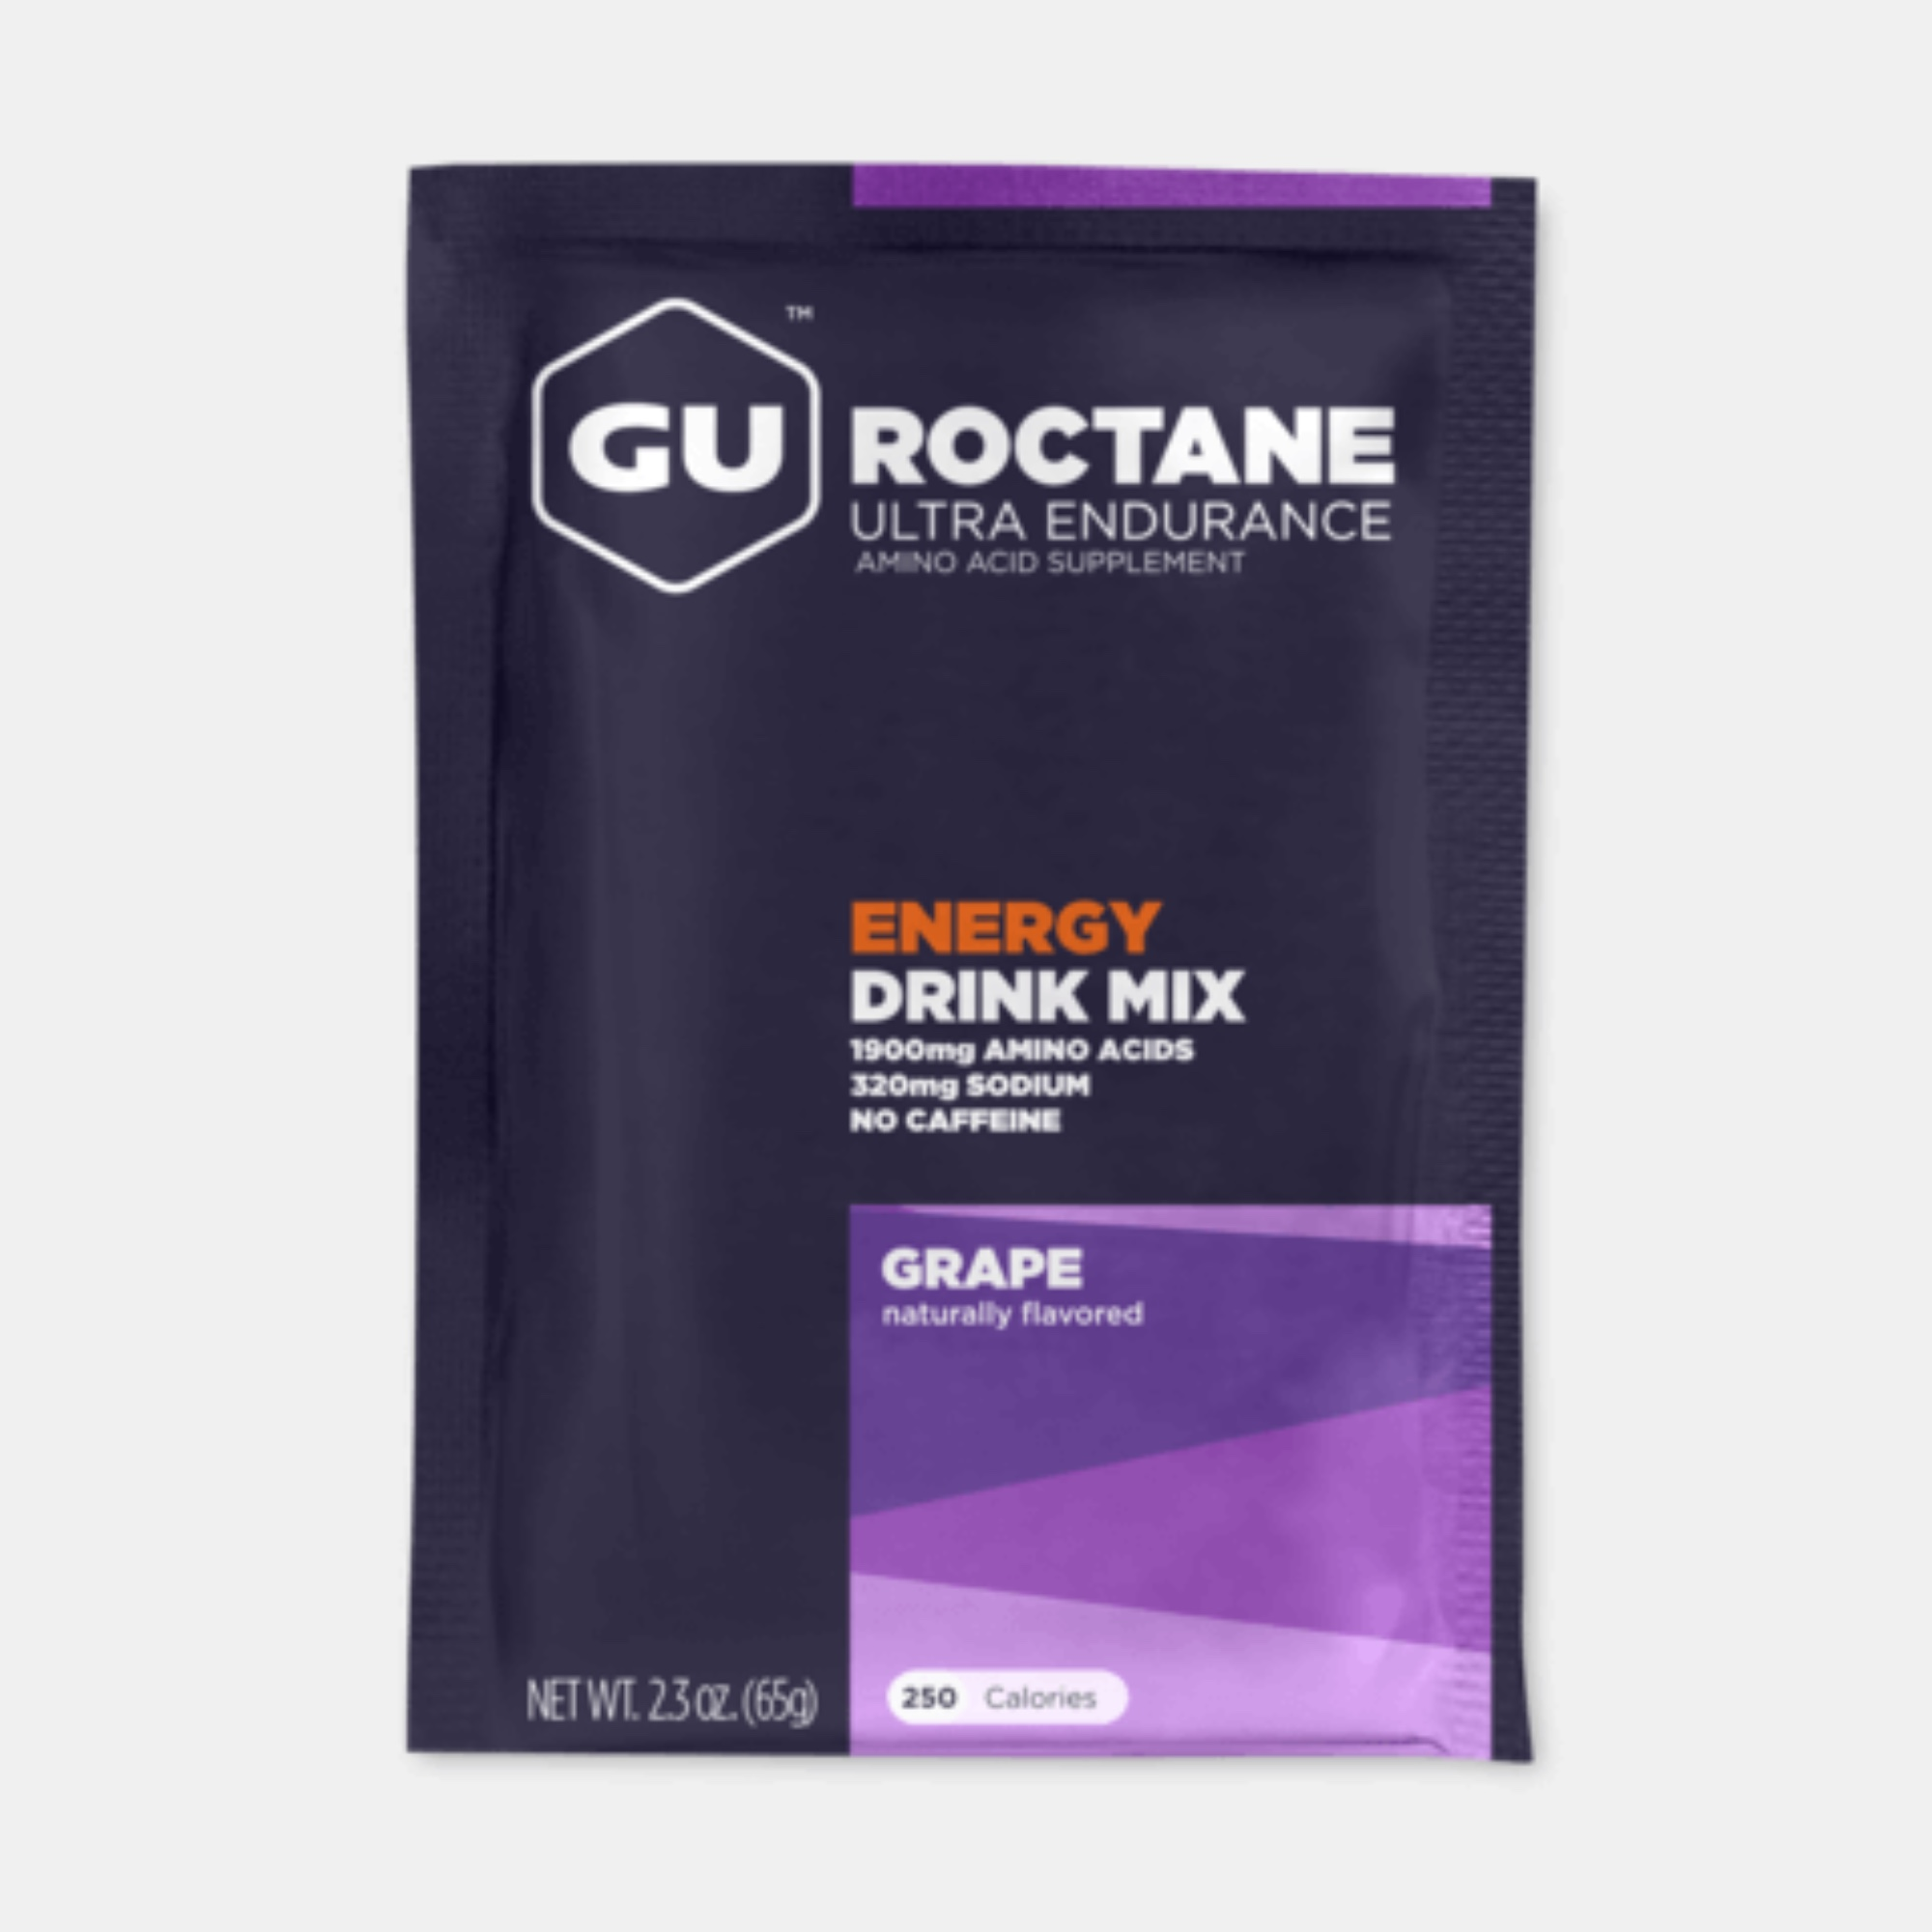 Roctane Ultra Endurance Energy Drink